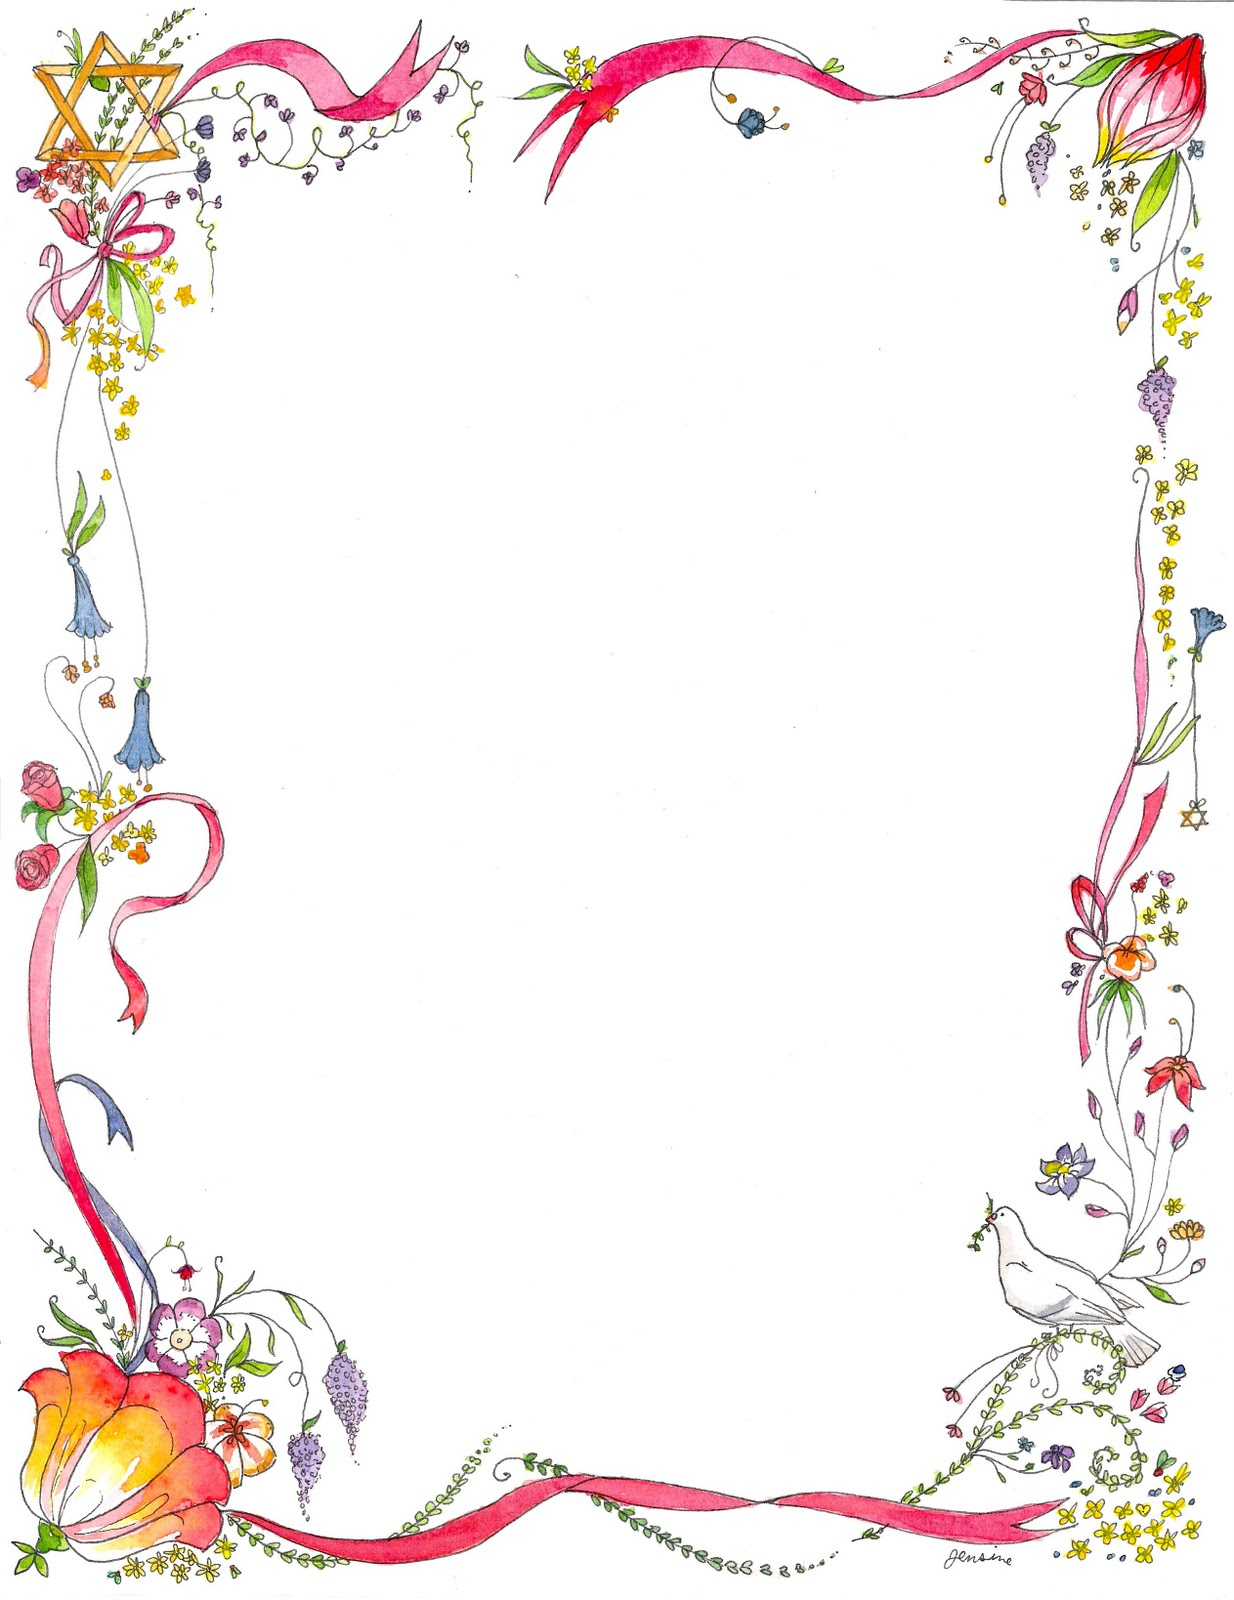 Flower Border Designs - Cliparts.co